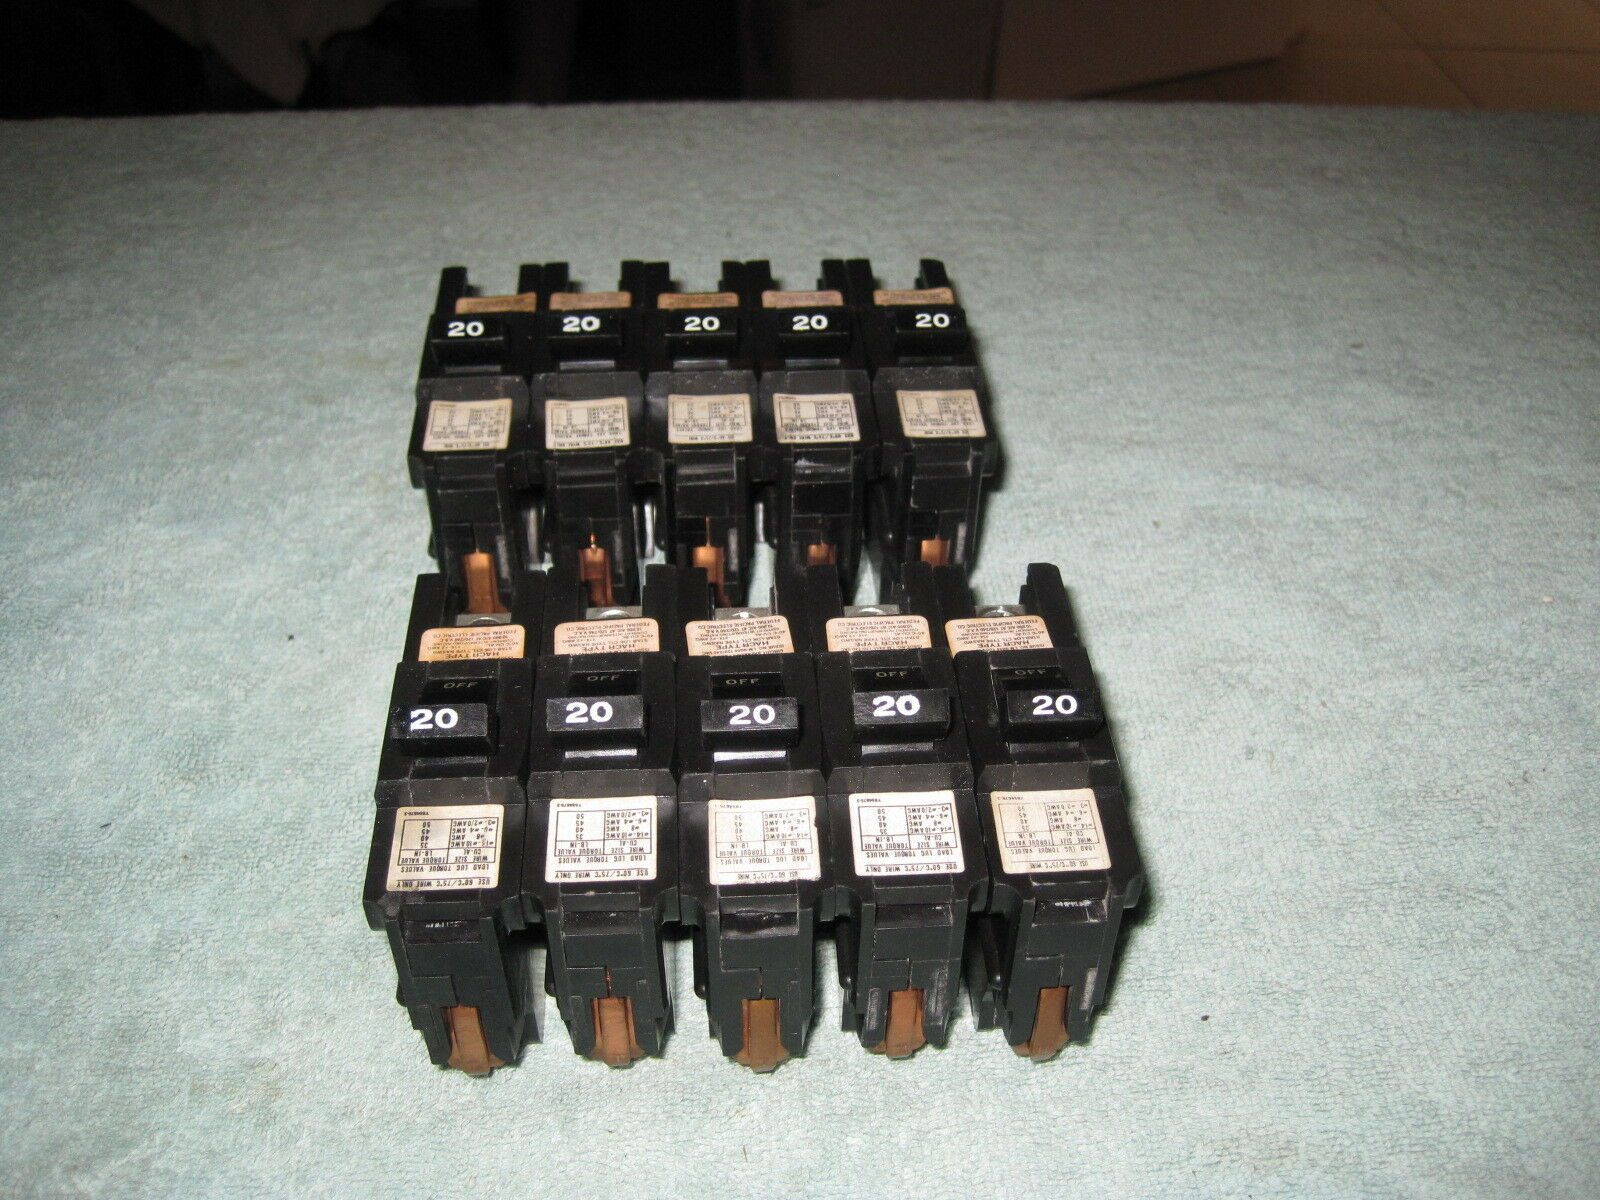 10 Fpe 20 Amp 1 Pole Stab Lok Type Na Thick Federal Pacific Breaker Box With A Circuit Panel Stablok